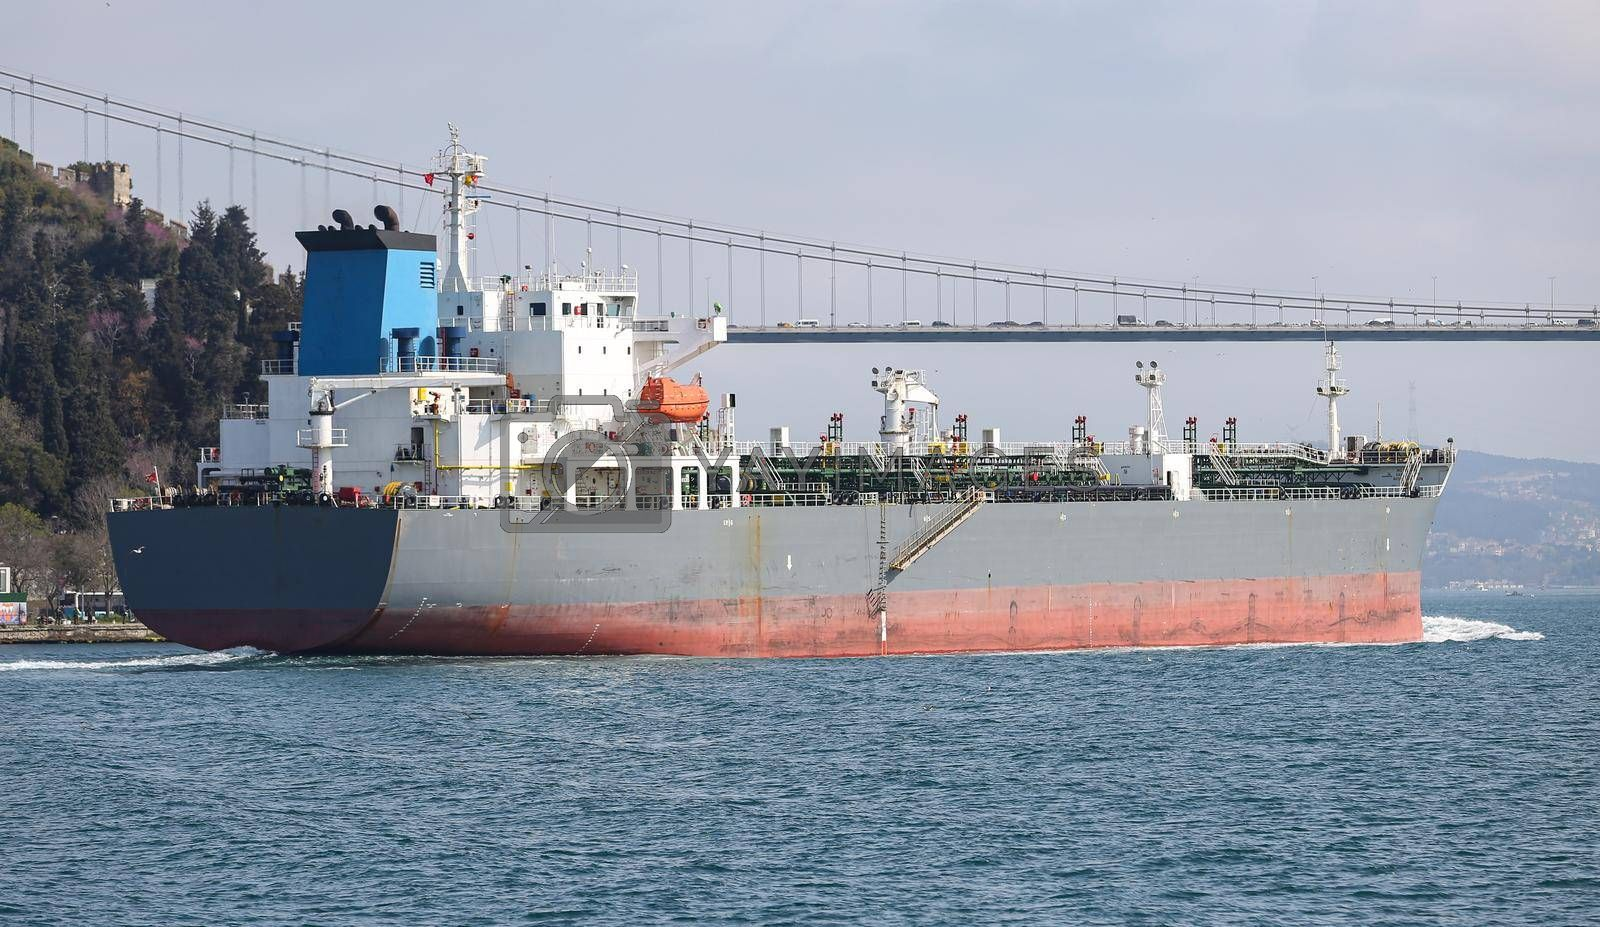 A cargo ship carrying goods between ports